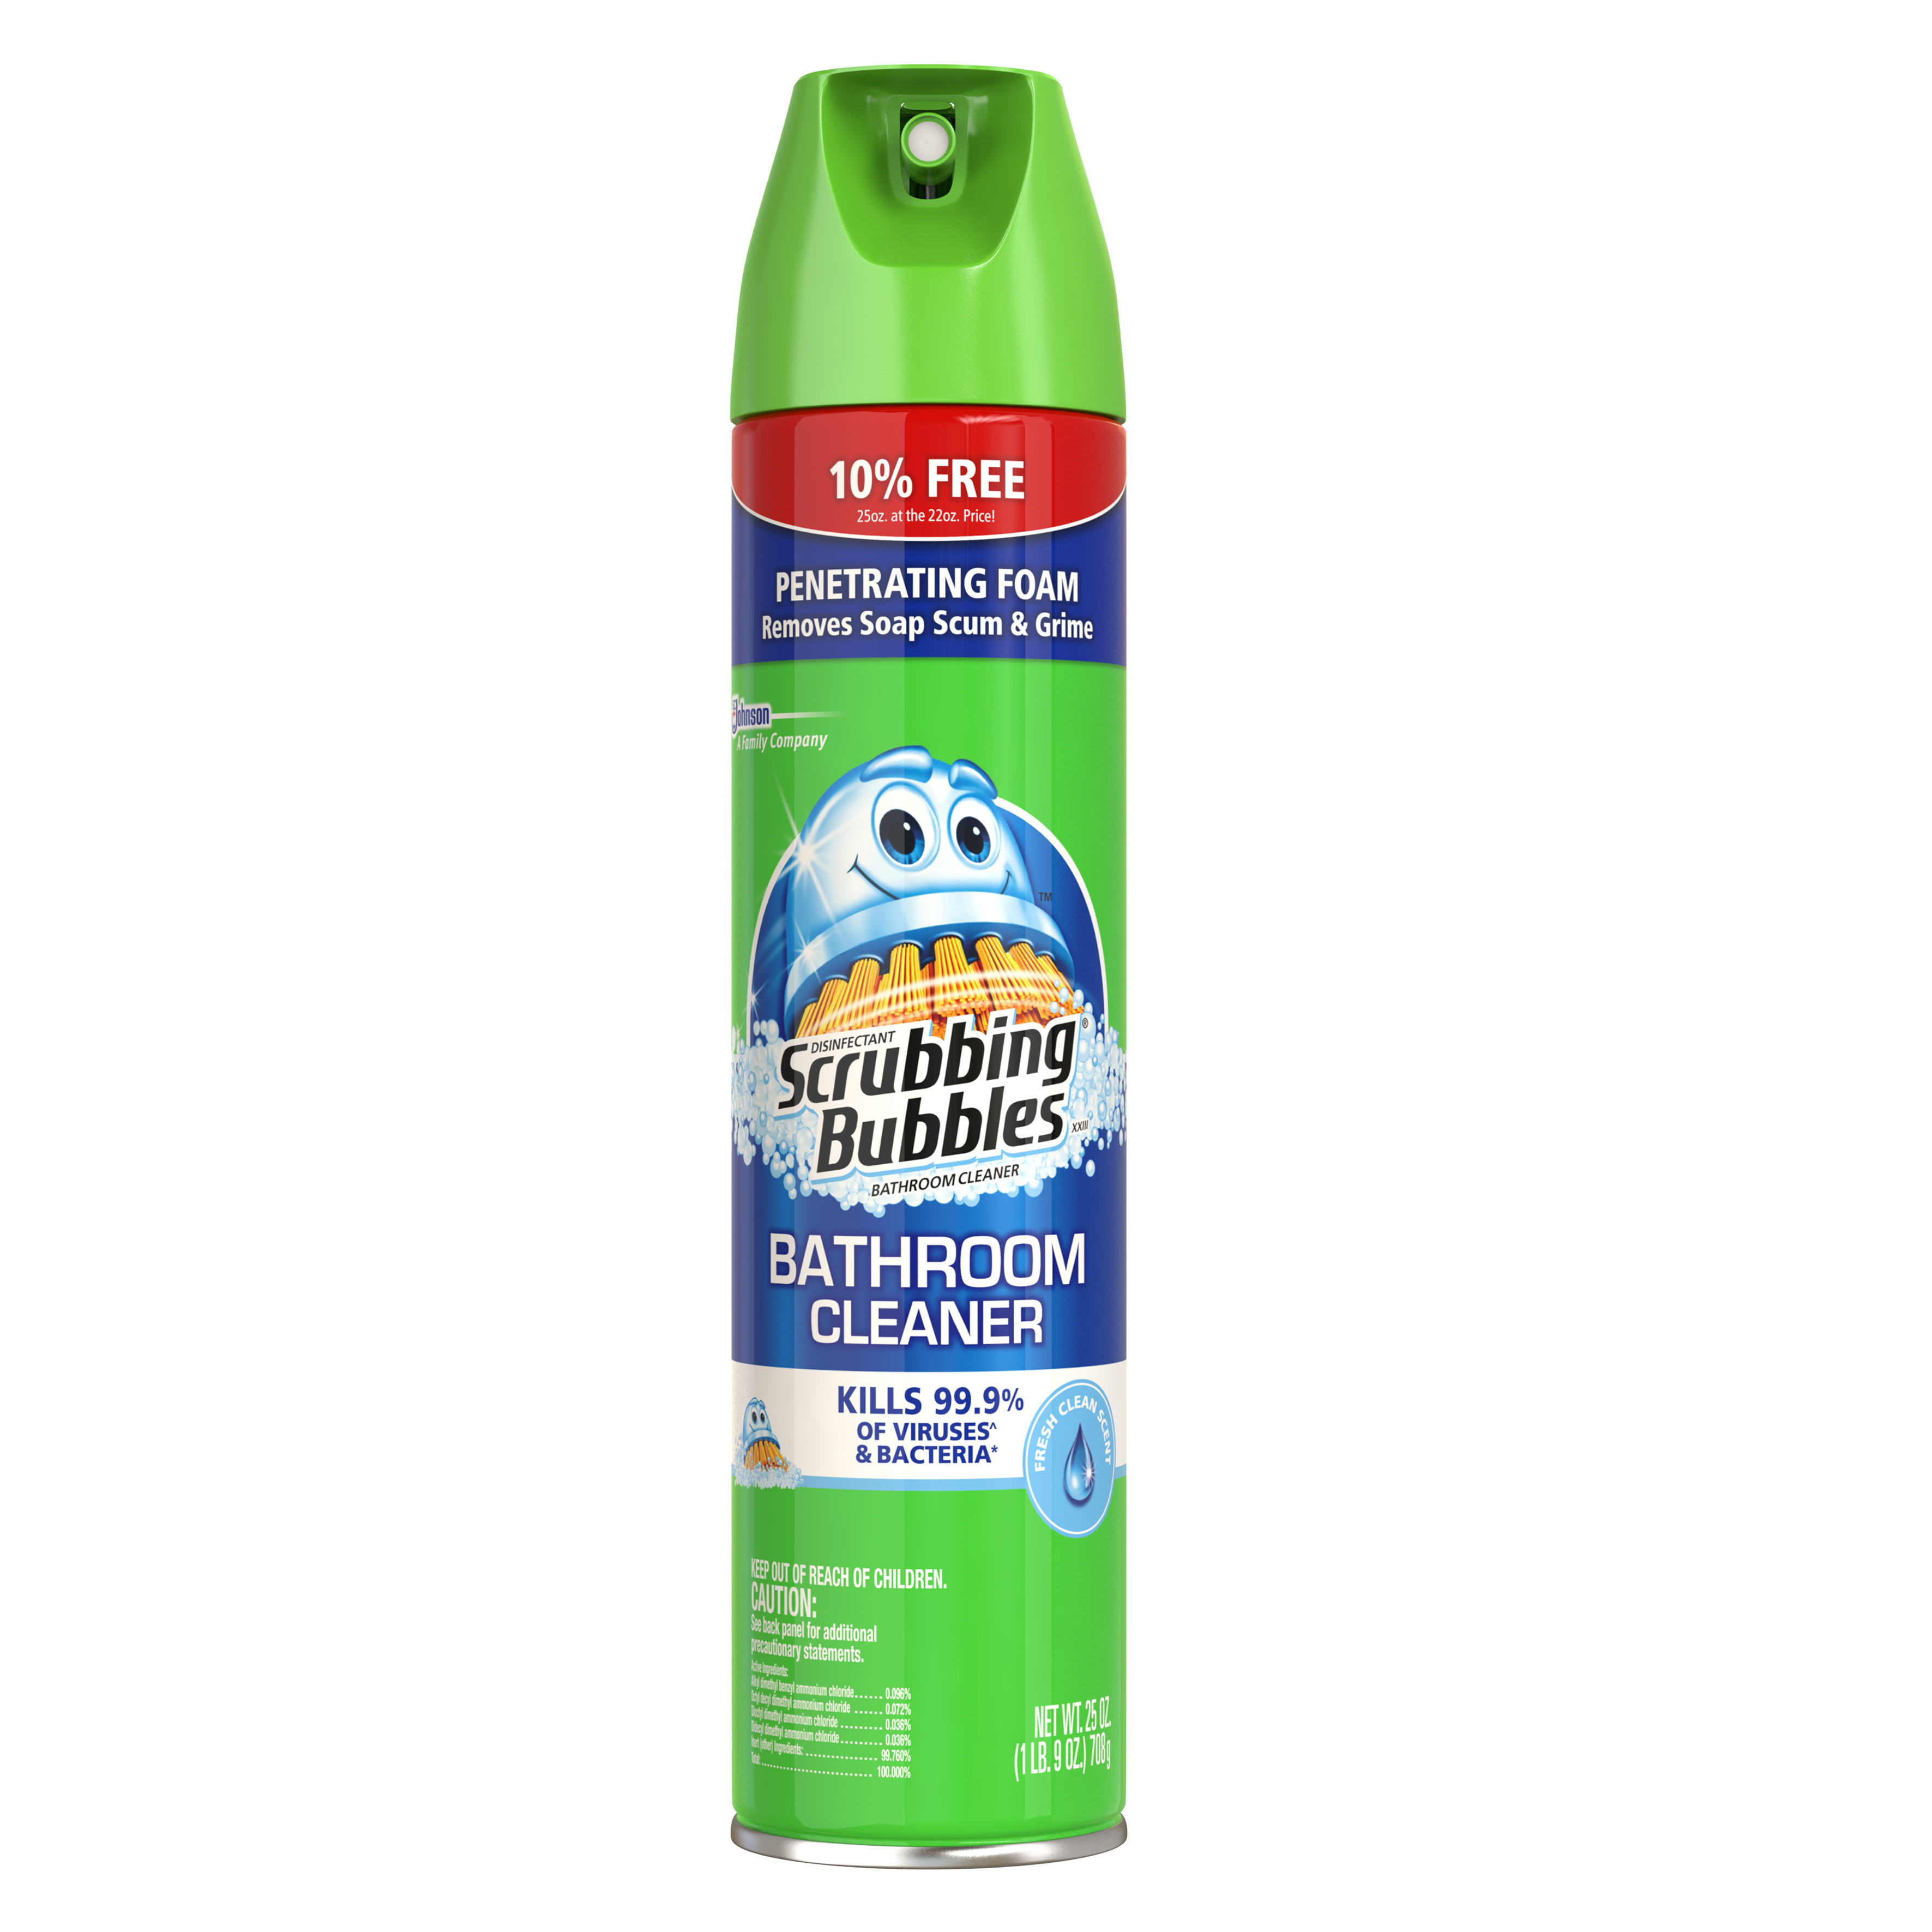 Scrubbing Bubbles Bathroom Cleaner Image Gallery. 221 Reviews